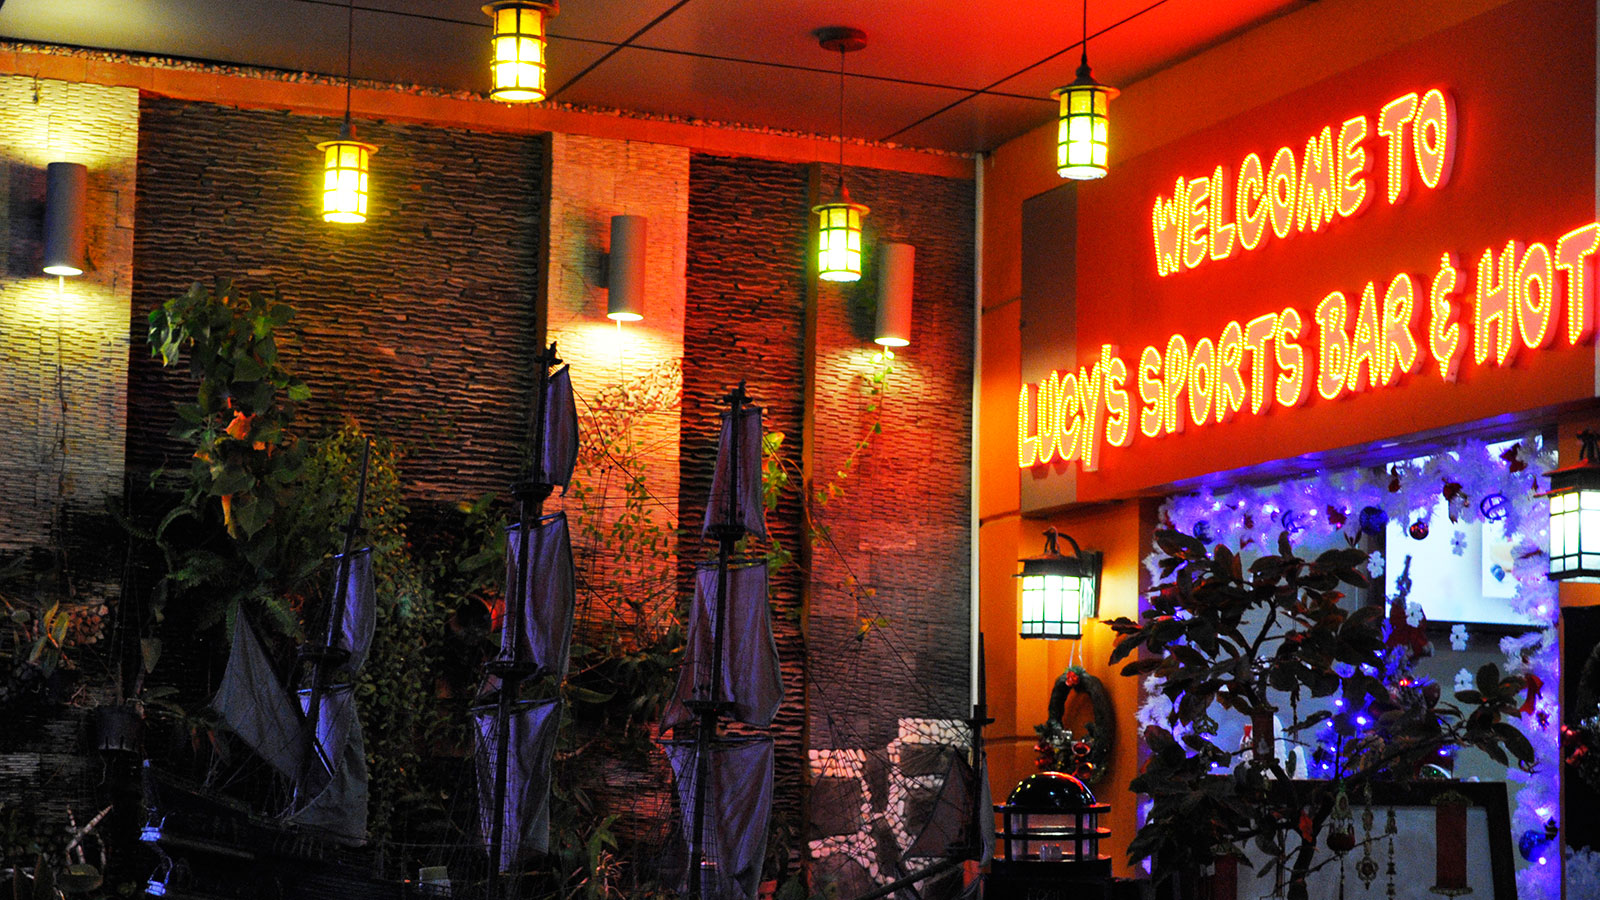 Lucy's Sport Bar in Vung Tau